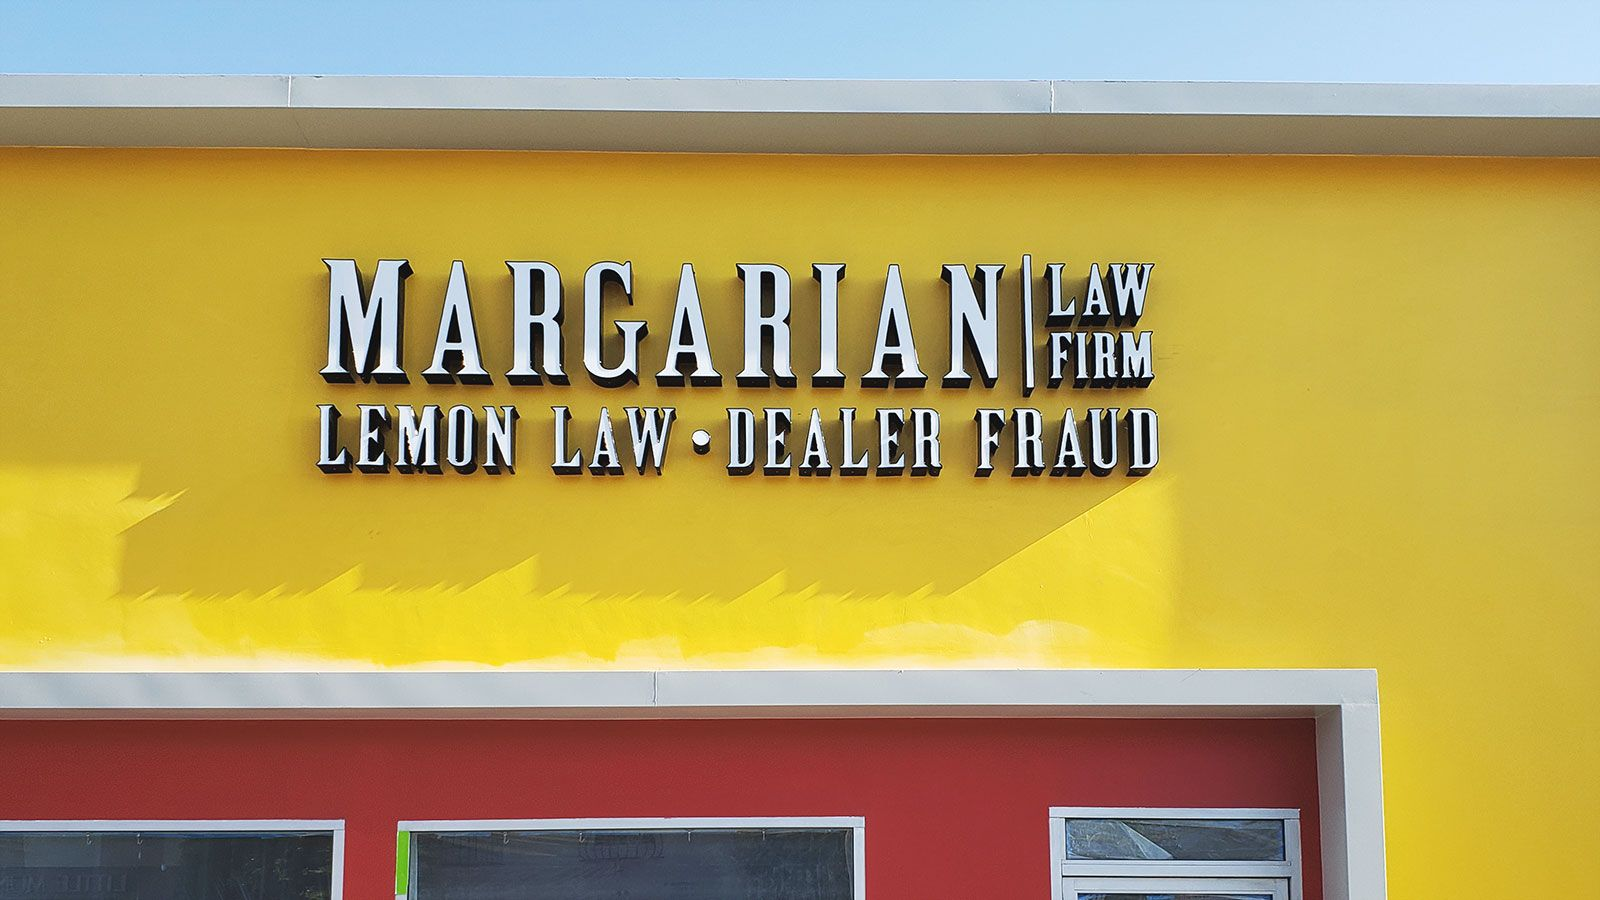 margarian law firm outdoor sign